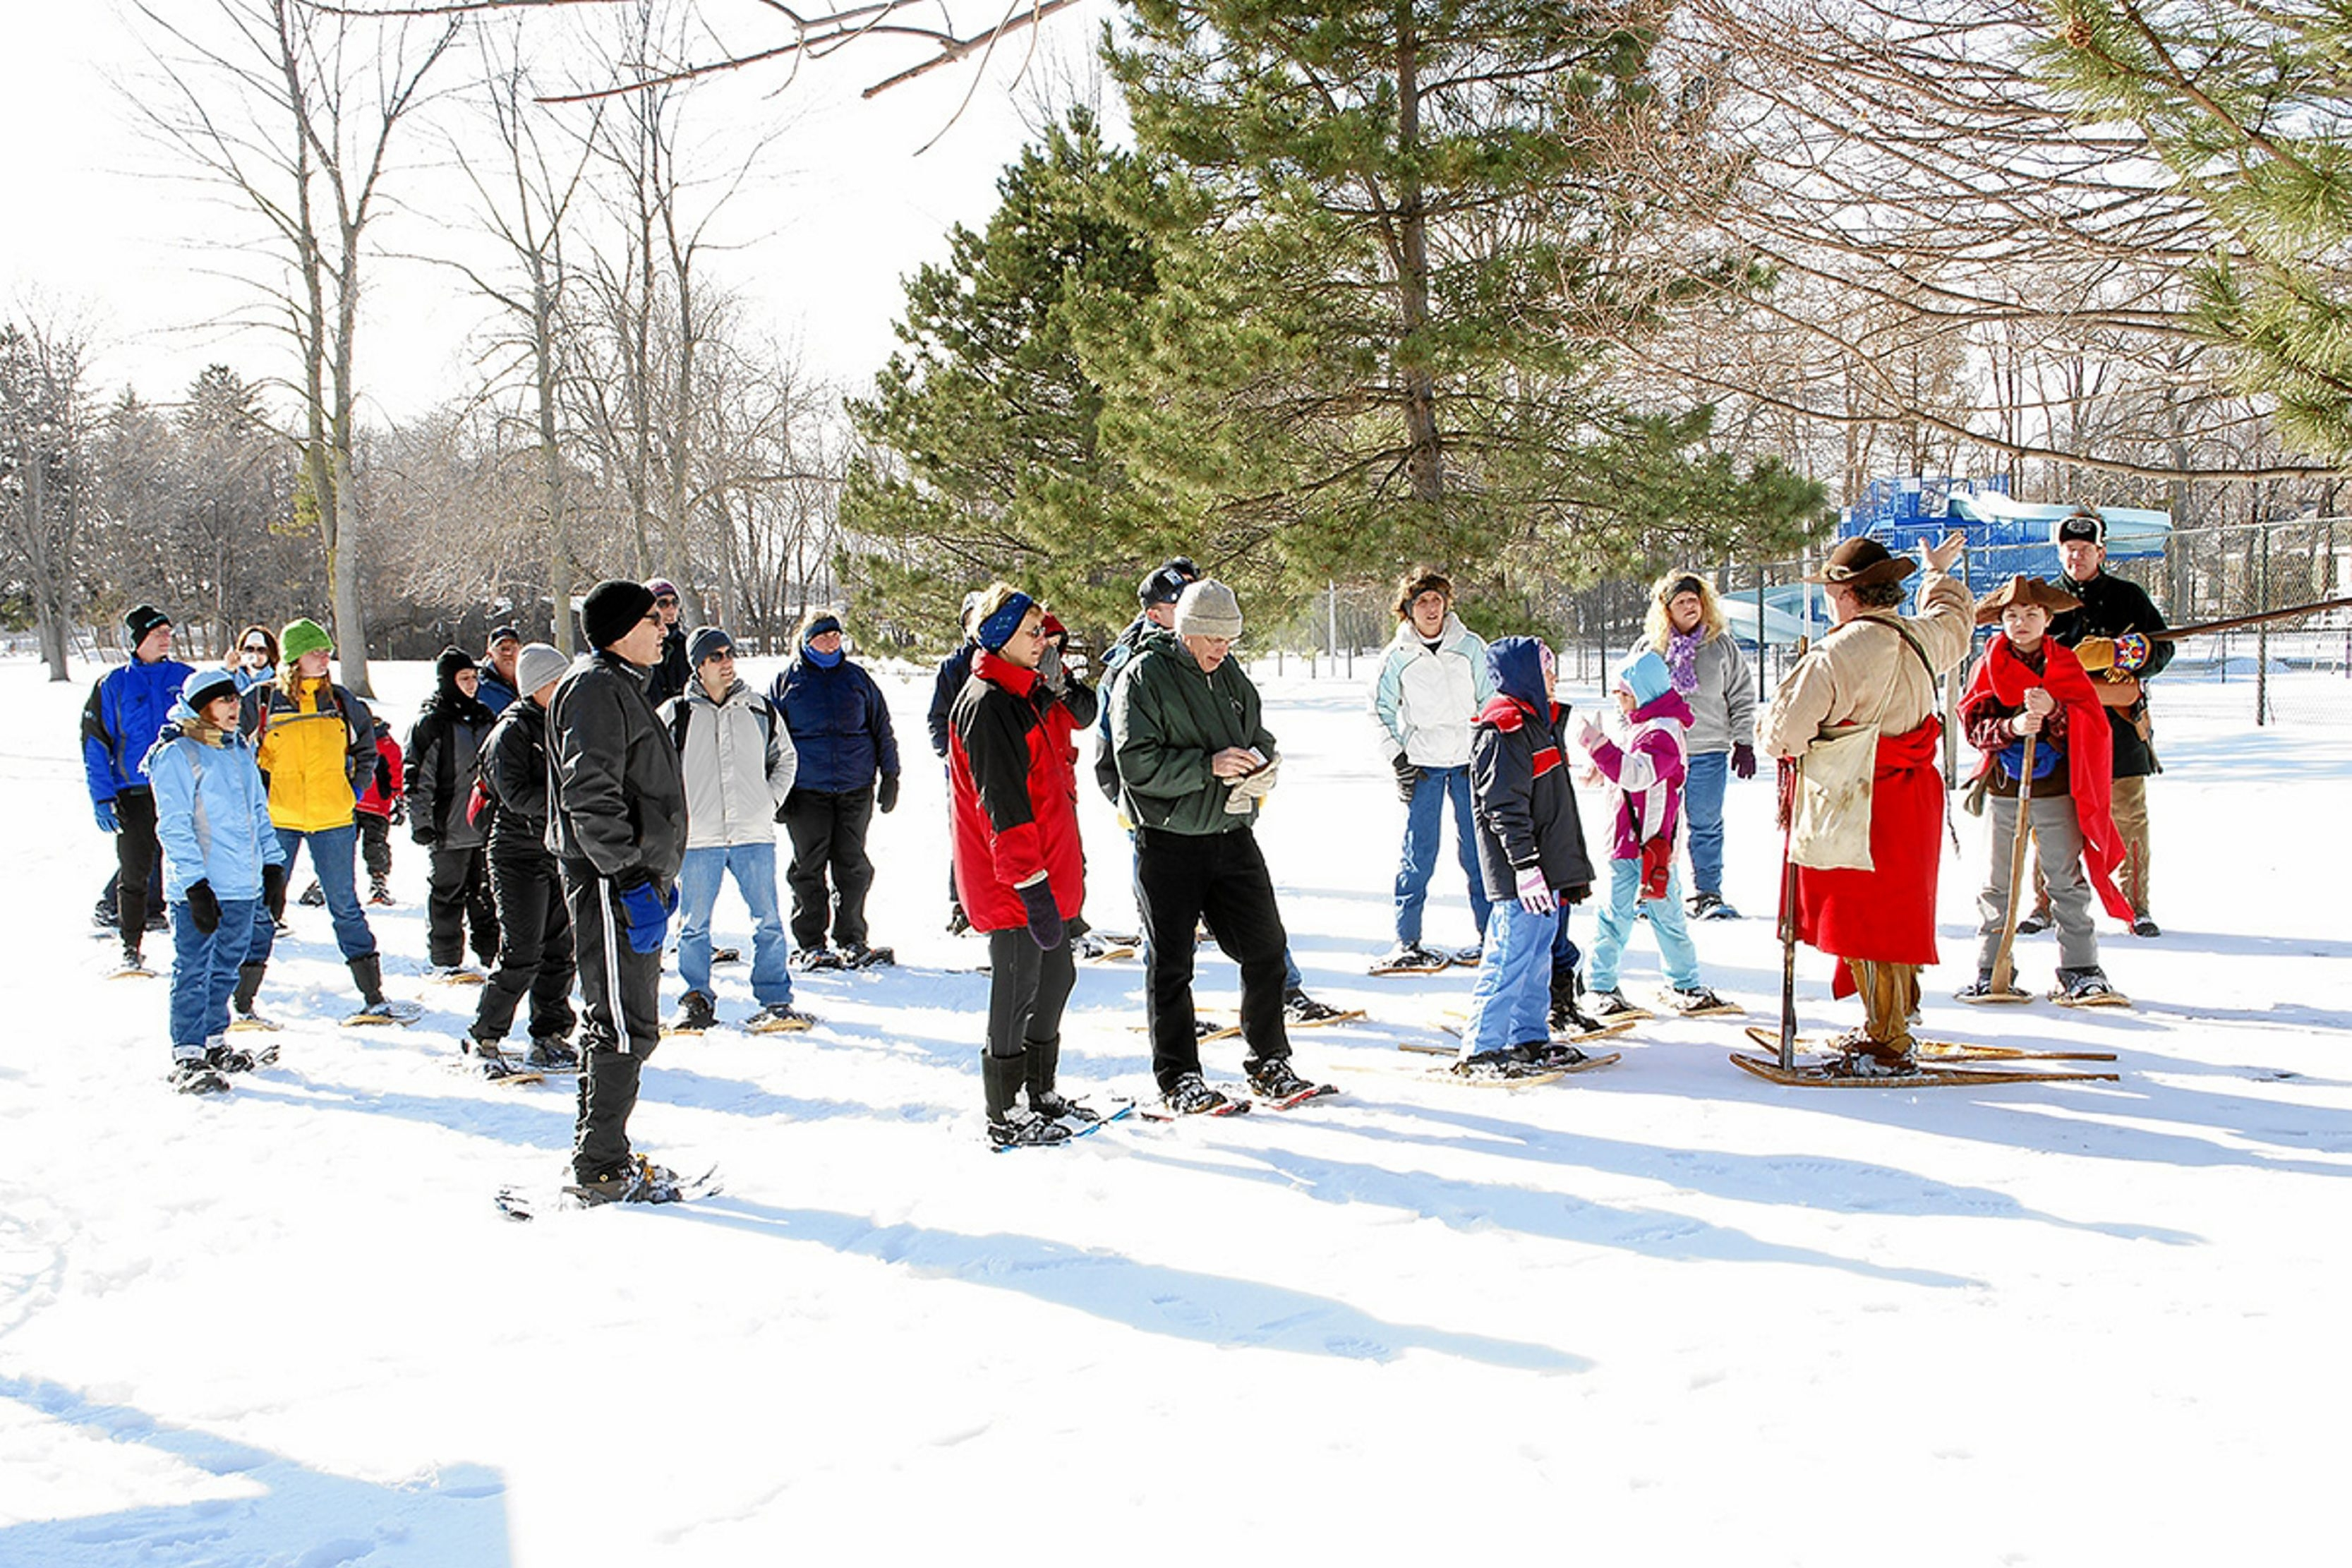 A snowshoe trek into the woods near Old Fort Niagara to watch re-enactors in a skirmish is part of the scheduled events Saturday, as long as there's snow.